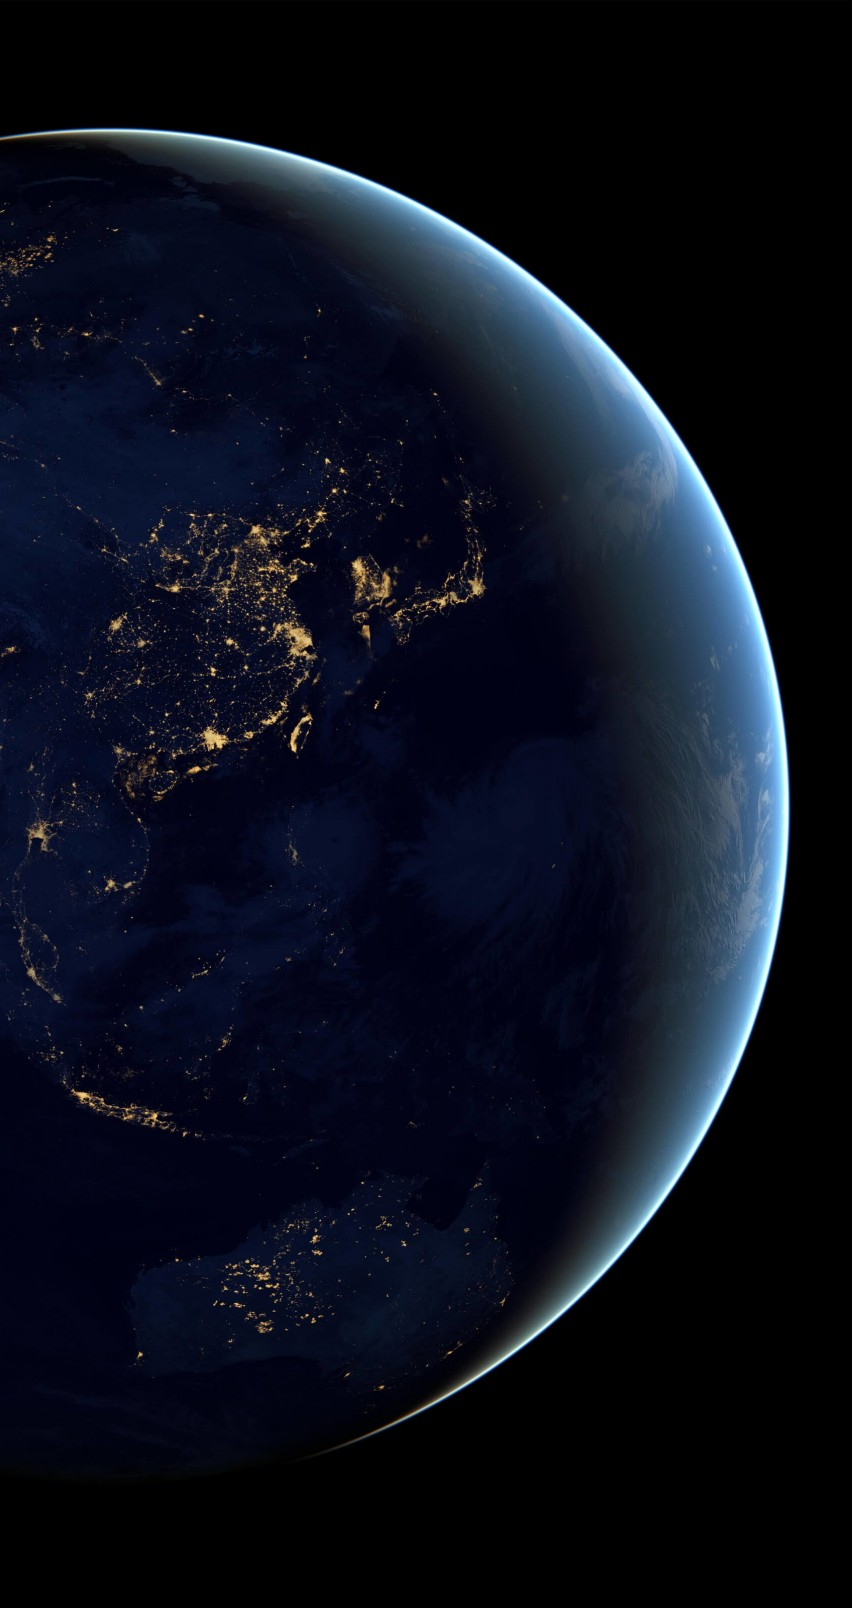 Earth At Night Seen From Space Wallpaper for Apple iPhone 6 / 6s